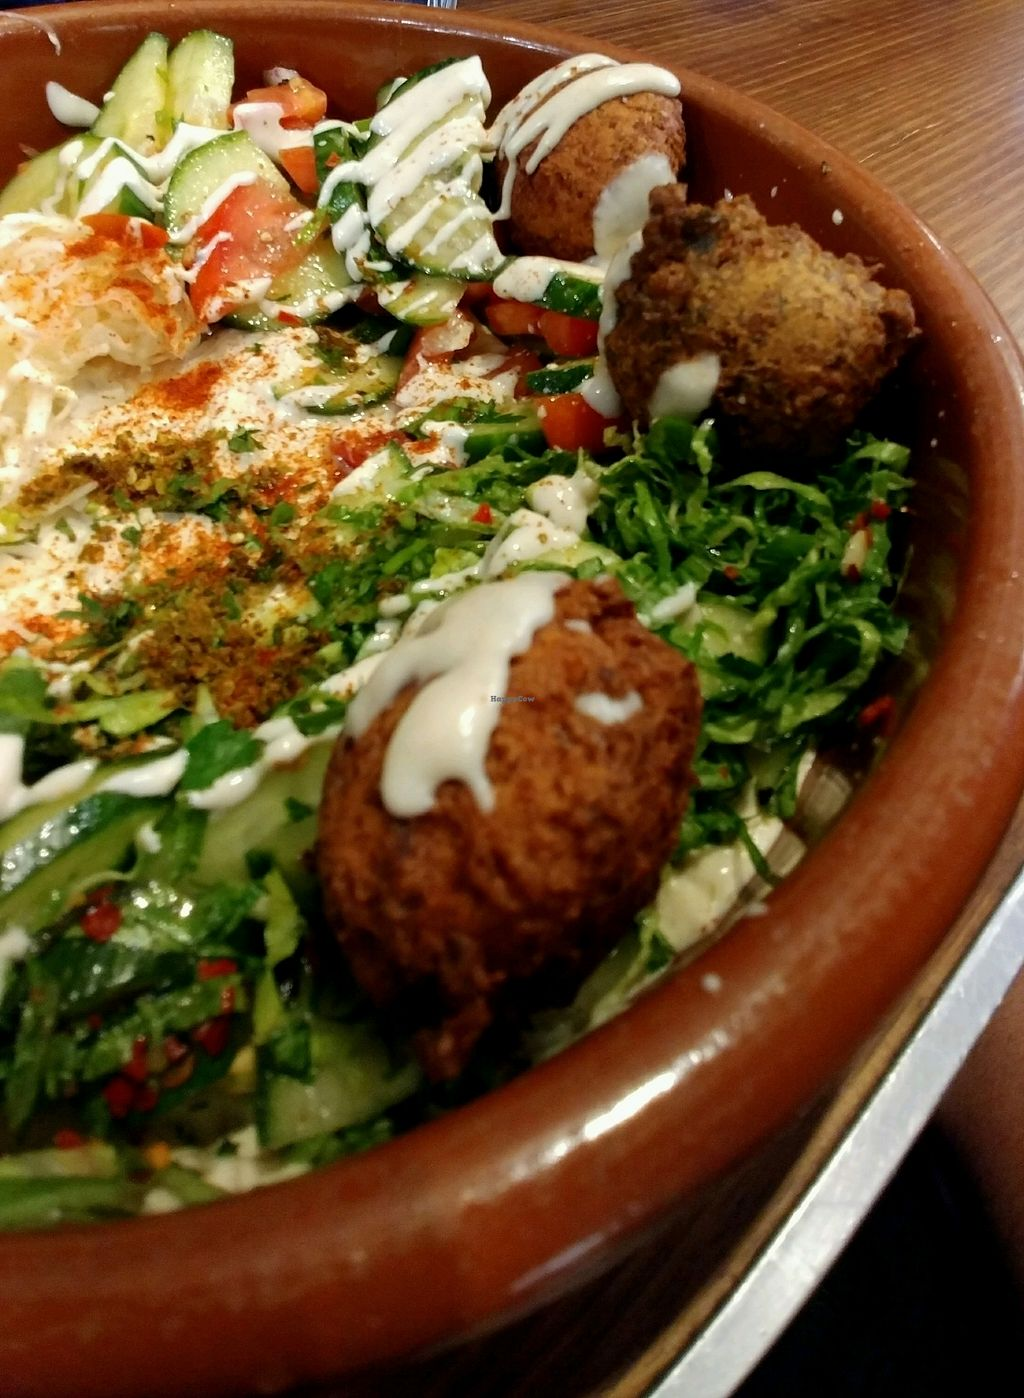 """Photo of Tahina  by <a href=""""/members/profile/karlaess"""">karlaess</a> <br/>falafel salad <br/> April 5, 2018  - <a href='/contact/abuse/image/72291/381073'>Report</a>"""